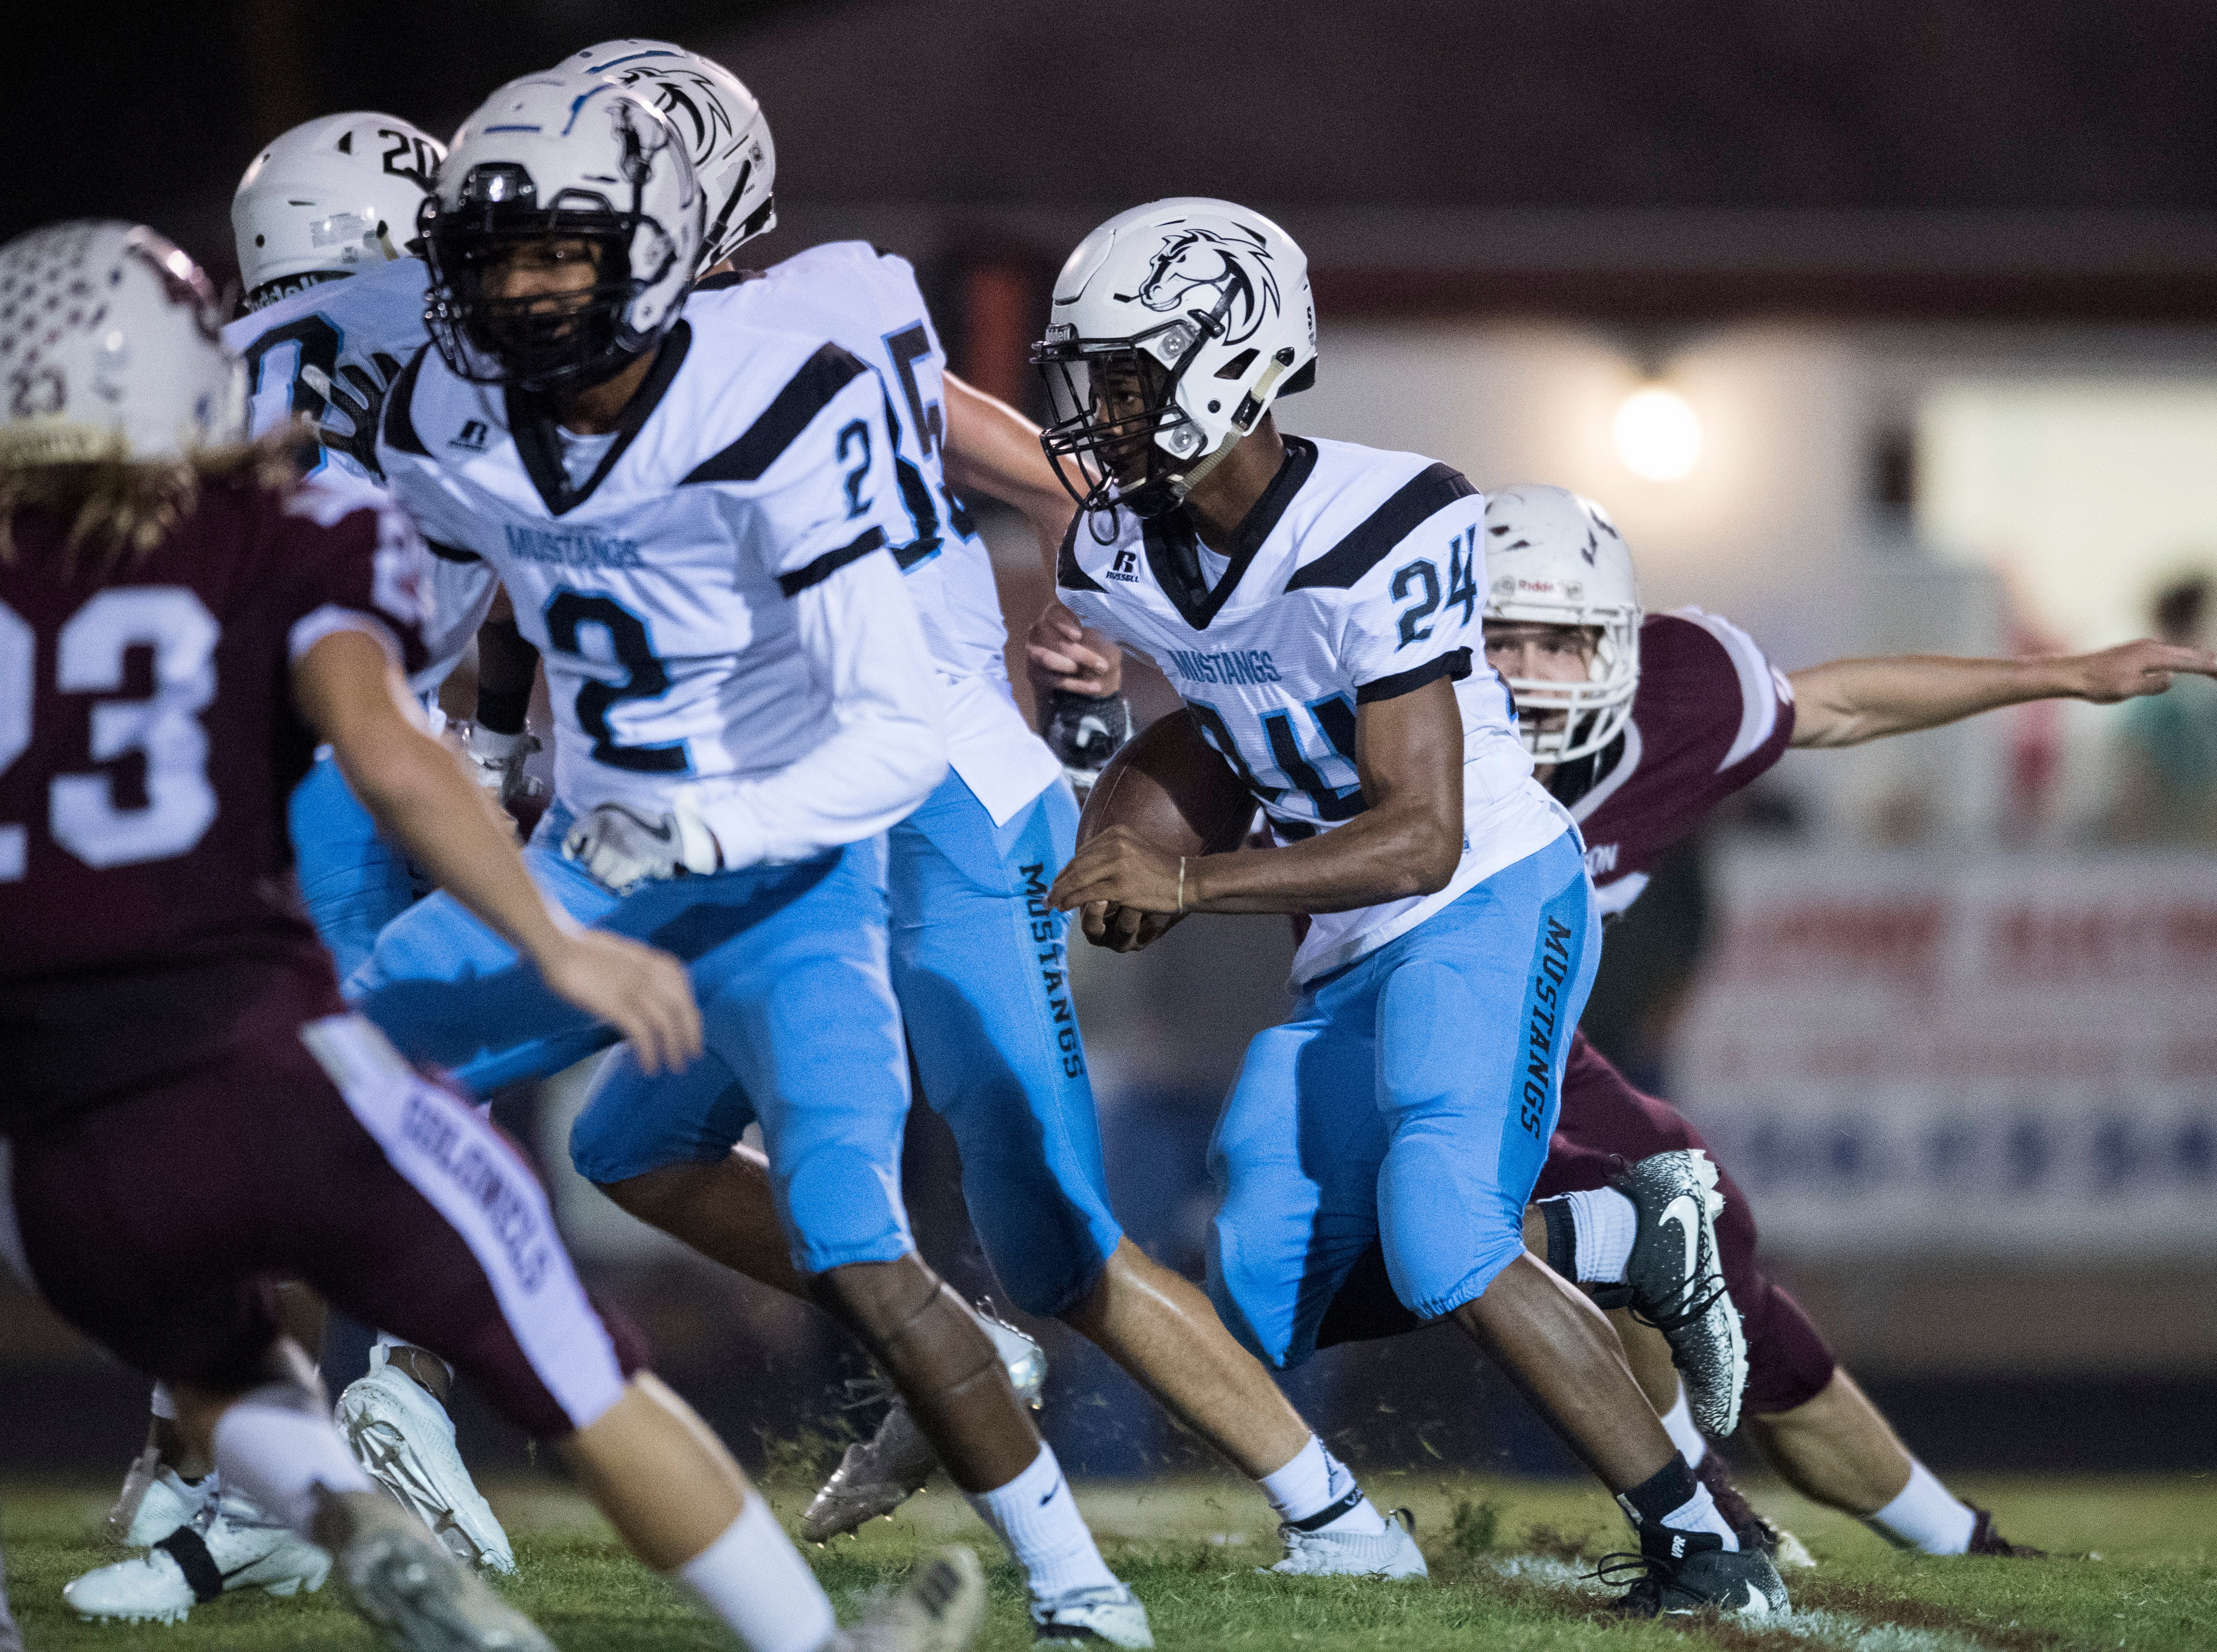 Muhlenberg County's Winky Drake (24) carries the ball during the Henderson vs Muhlenberg County game Friday, Sept. 28, 2018. The Henderson County Colonels won, 61-6.